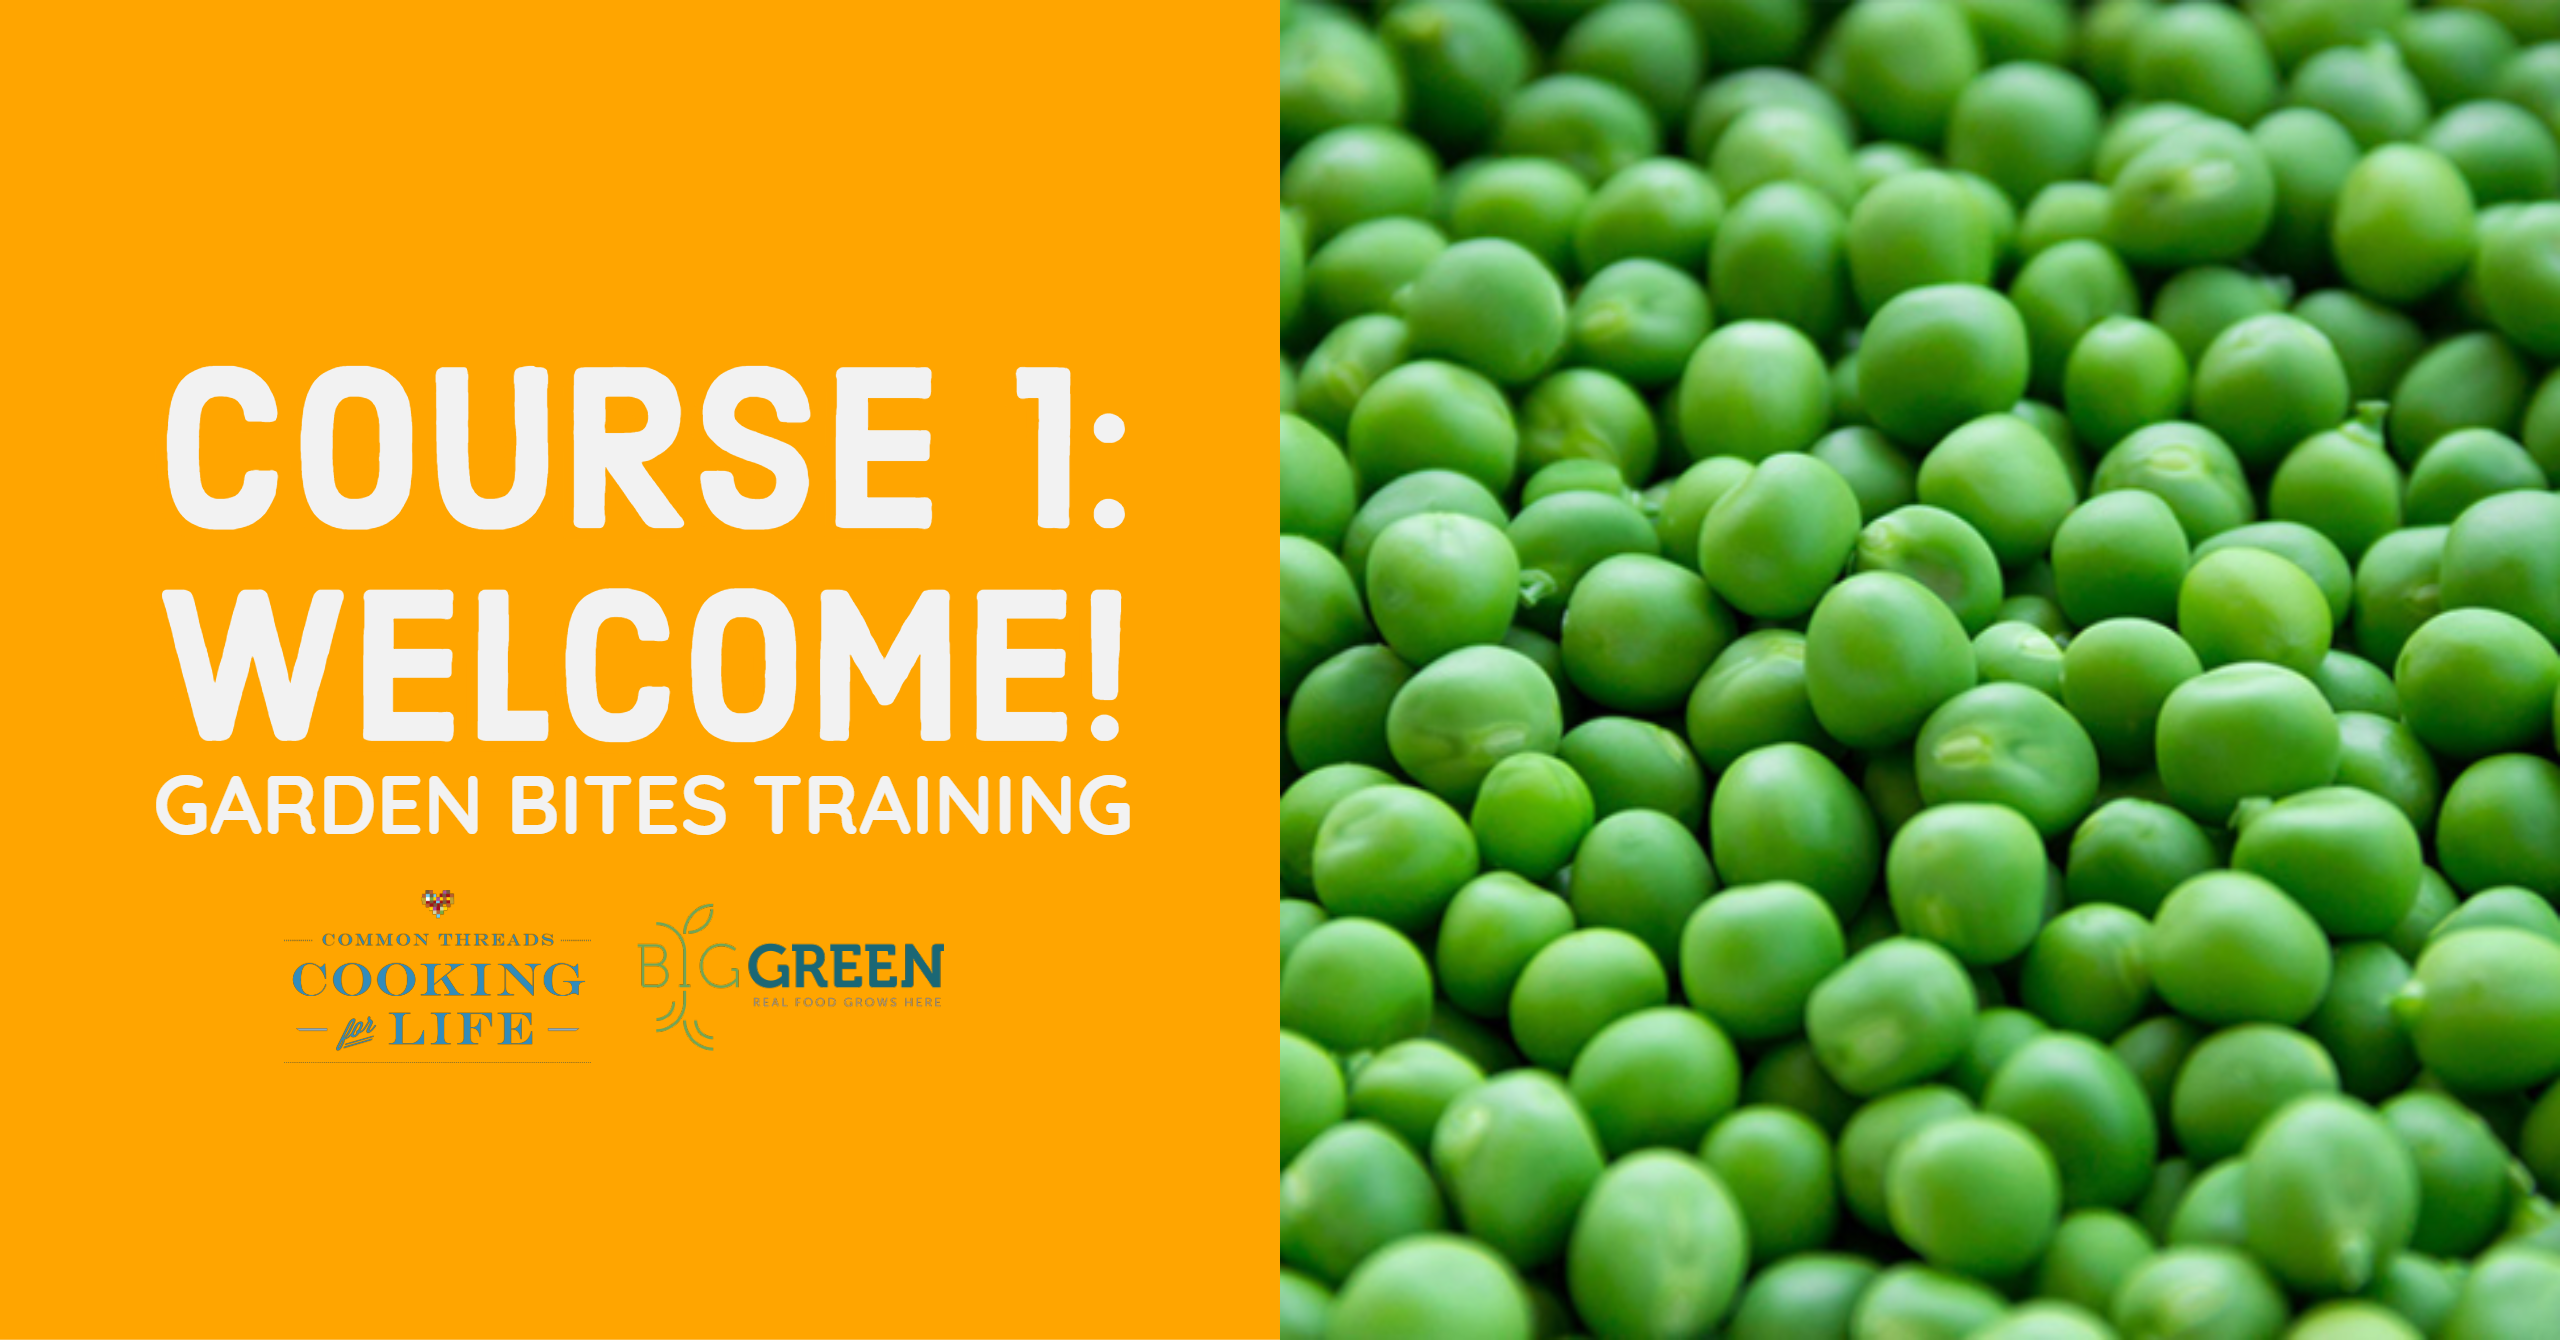 Garden Bites Training for CT: Welcome!